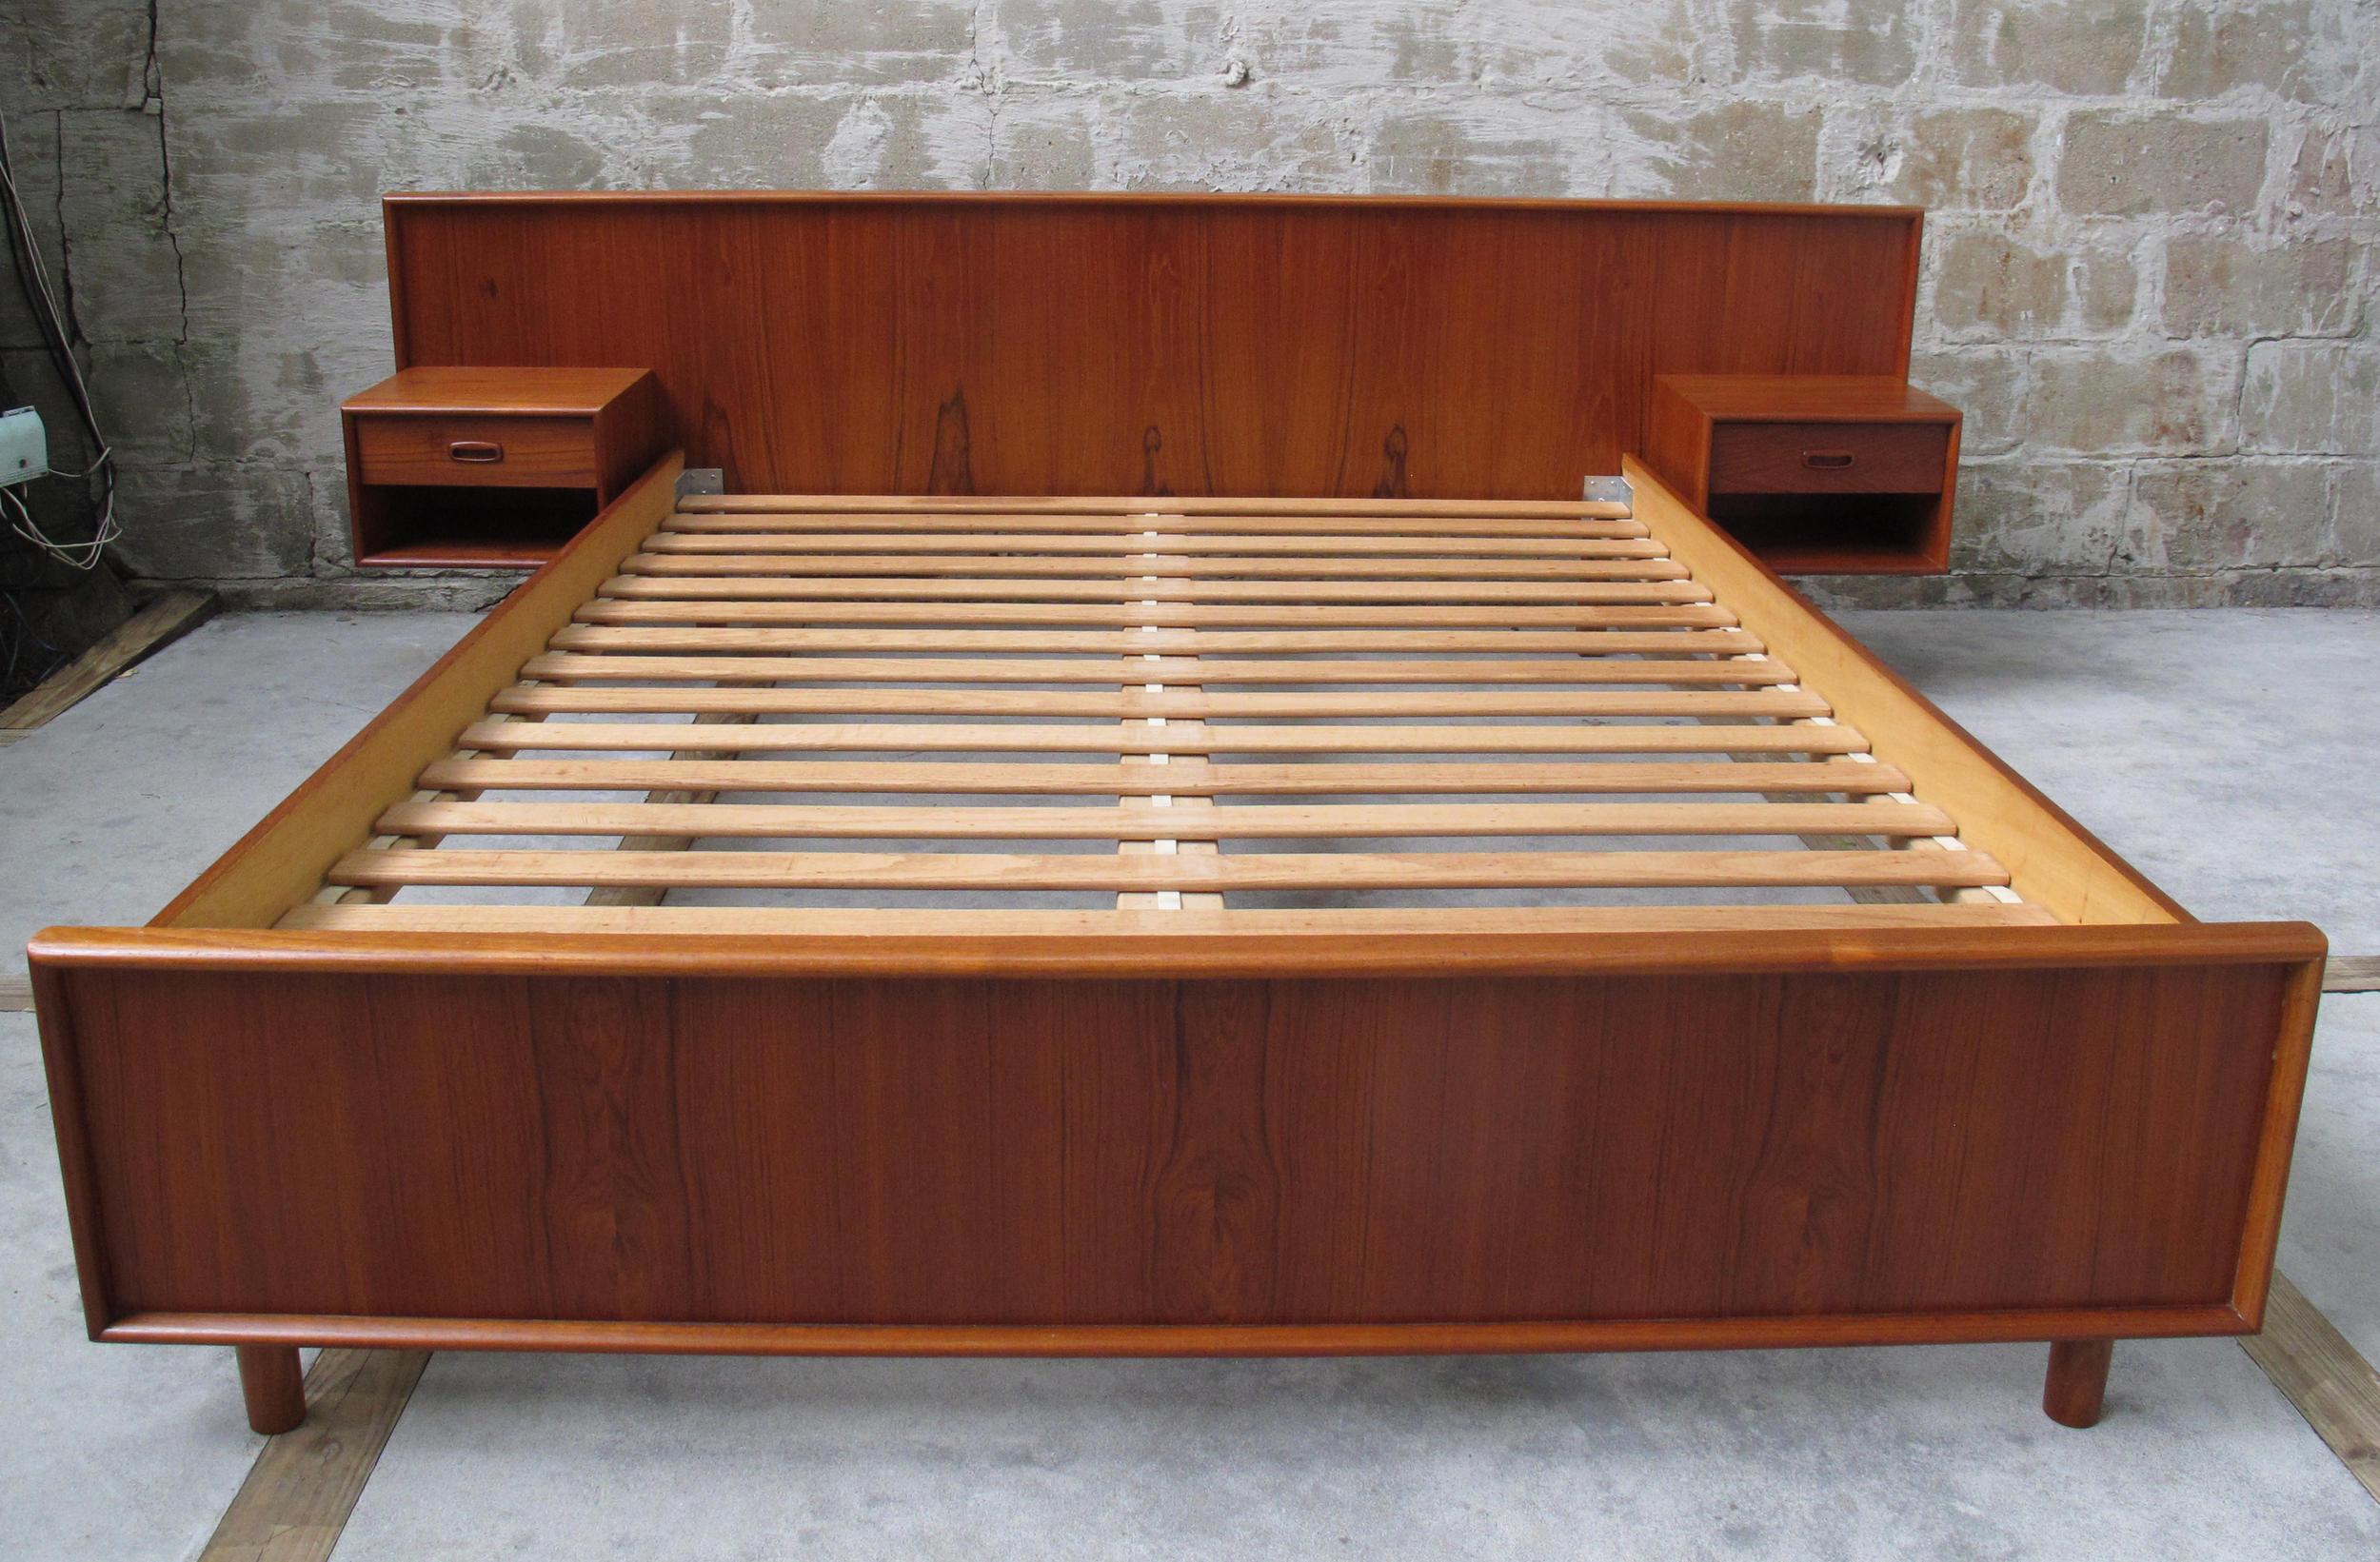 DANISH TEAK BED FRAME WITH FLOATING NIGHTSTANDS